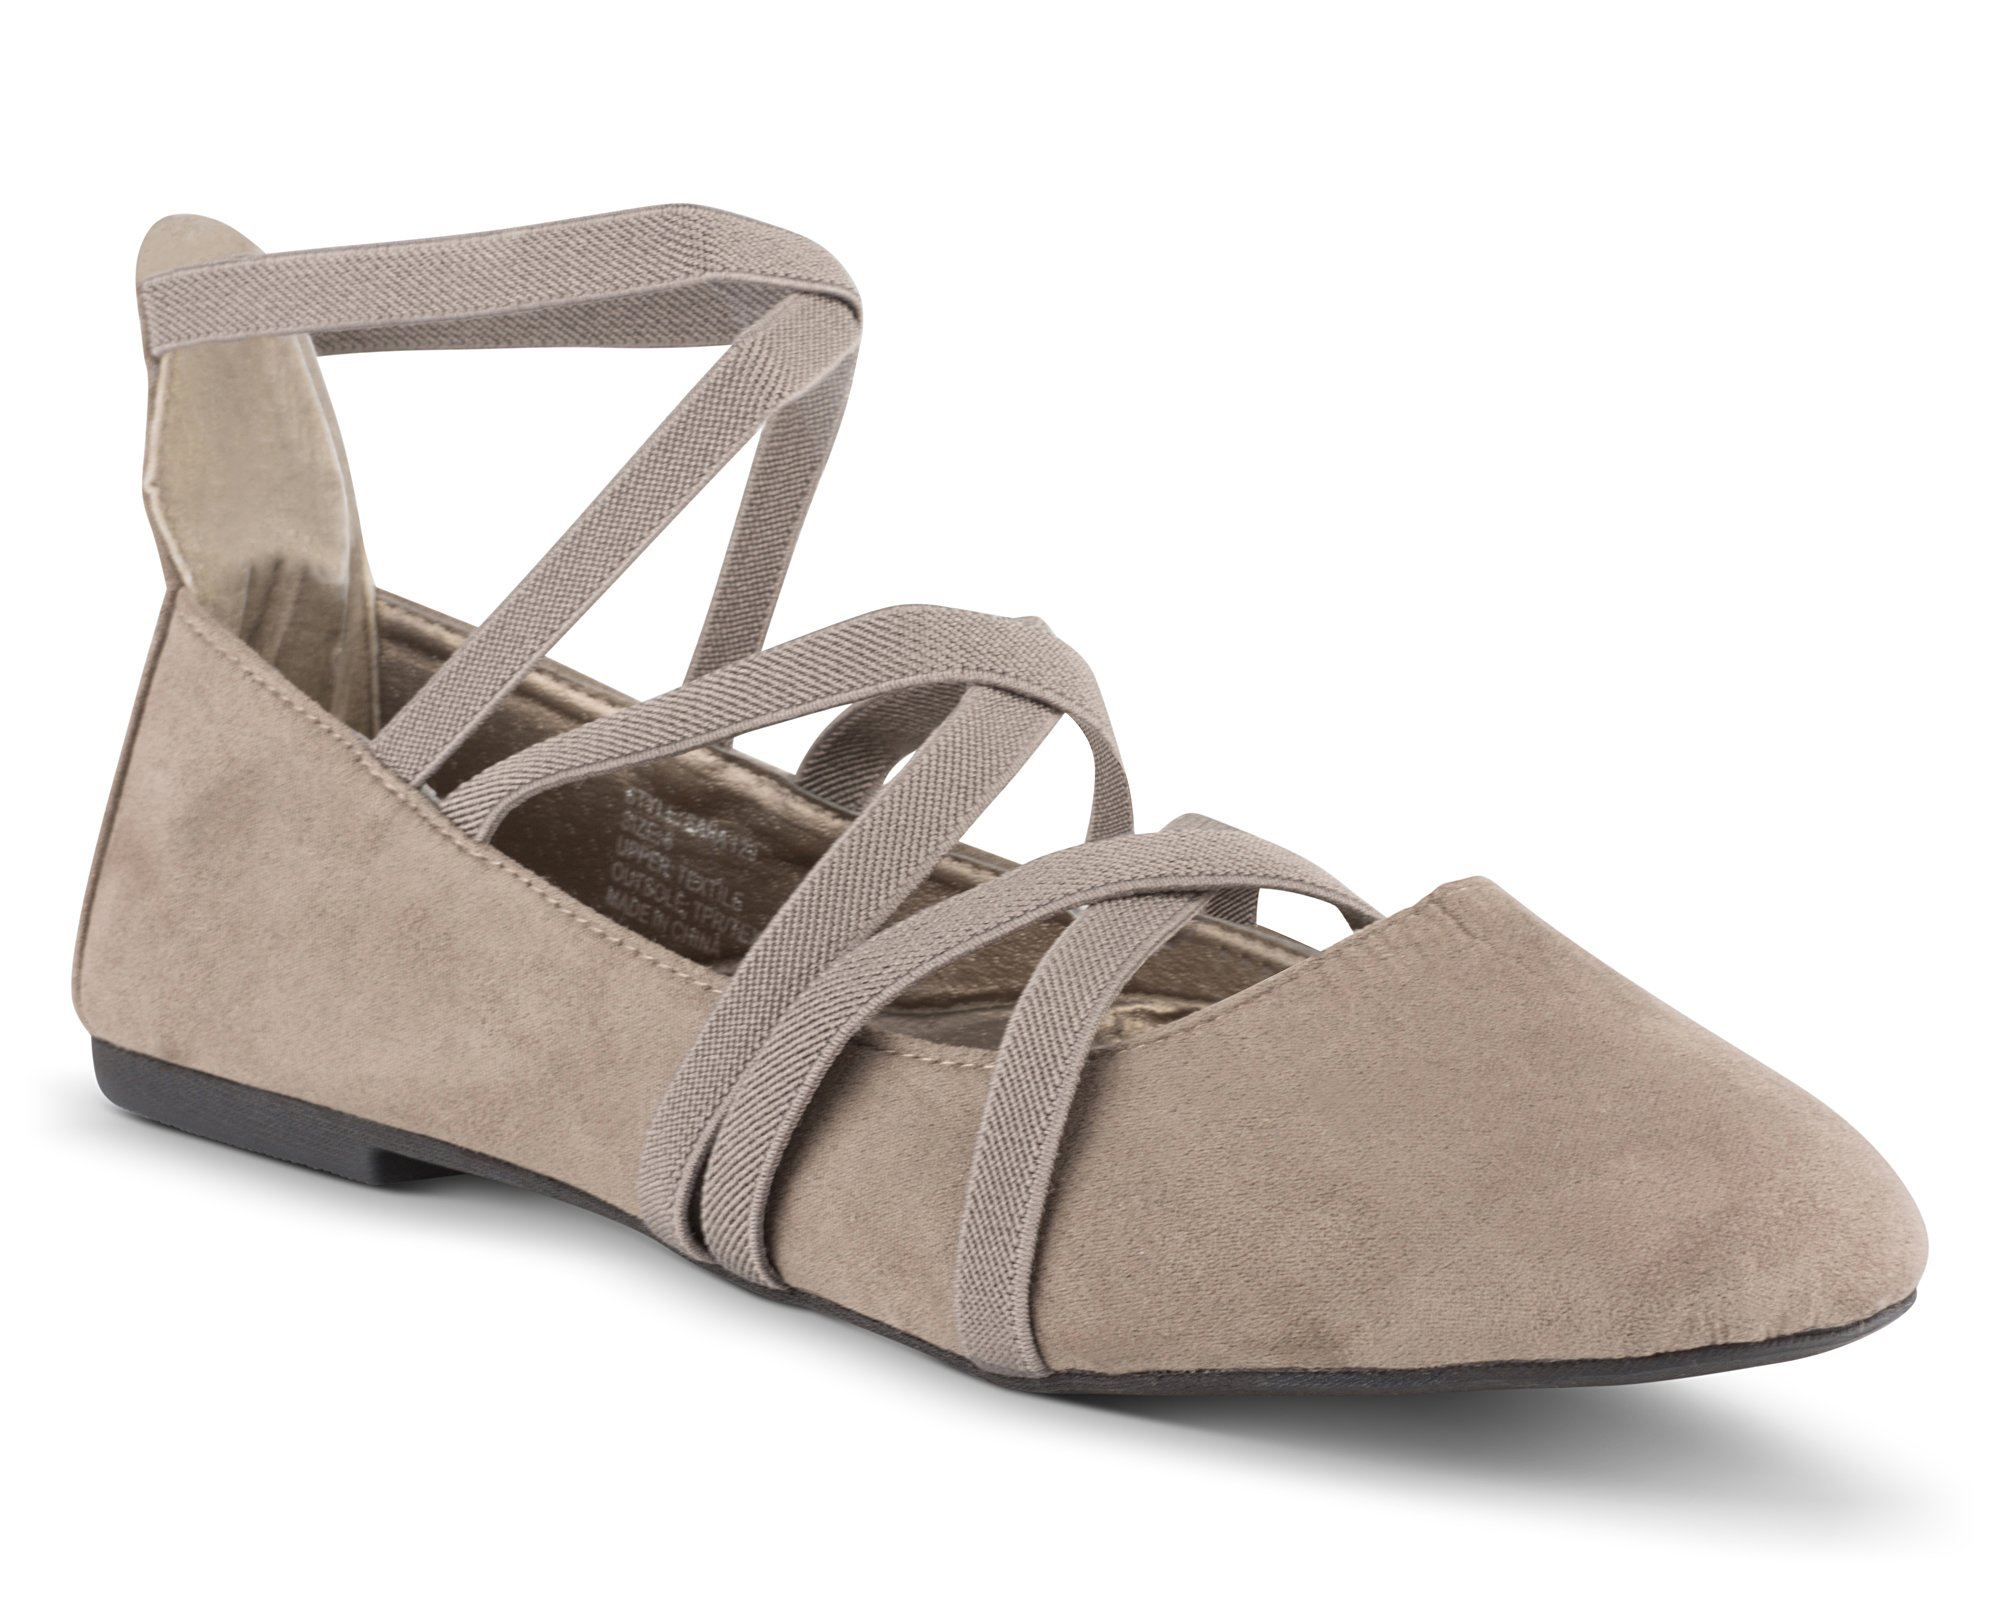 Twisted Womens Faux Suede Strappy Fashion Flats SARA 129-TAUPE Size 8